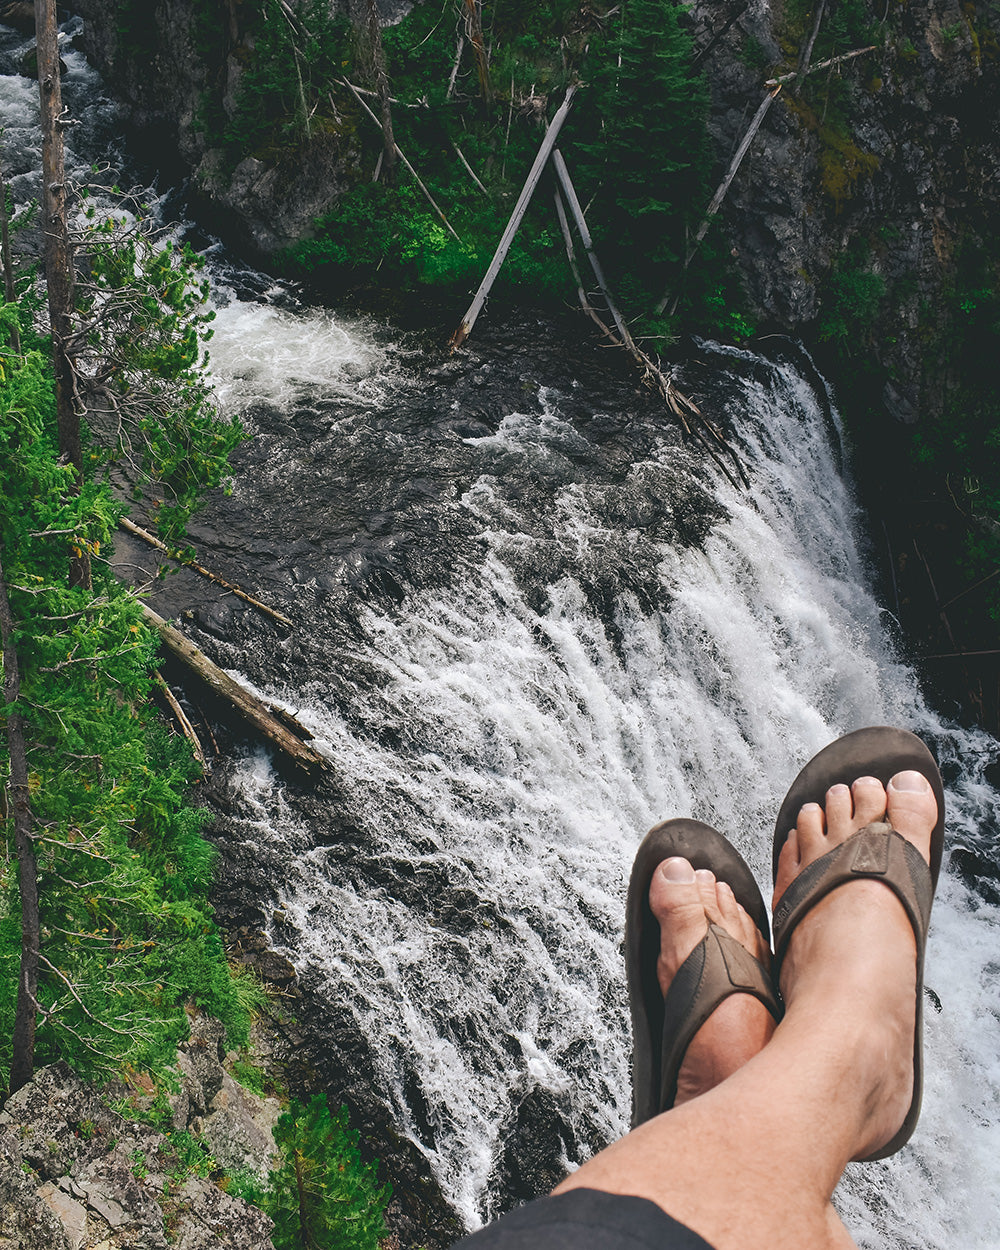 Always take a pair of flip flops camping. They come in handy for showers and when nature calls in the middle of the night. Or if you are like us you wear them anytime even while doing a little exploring!